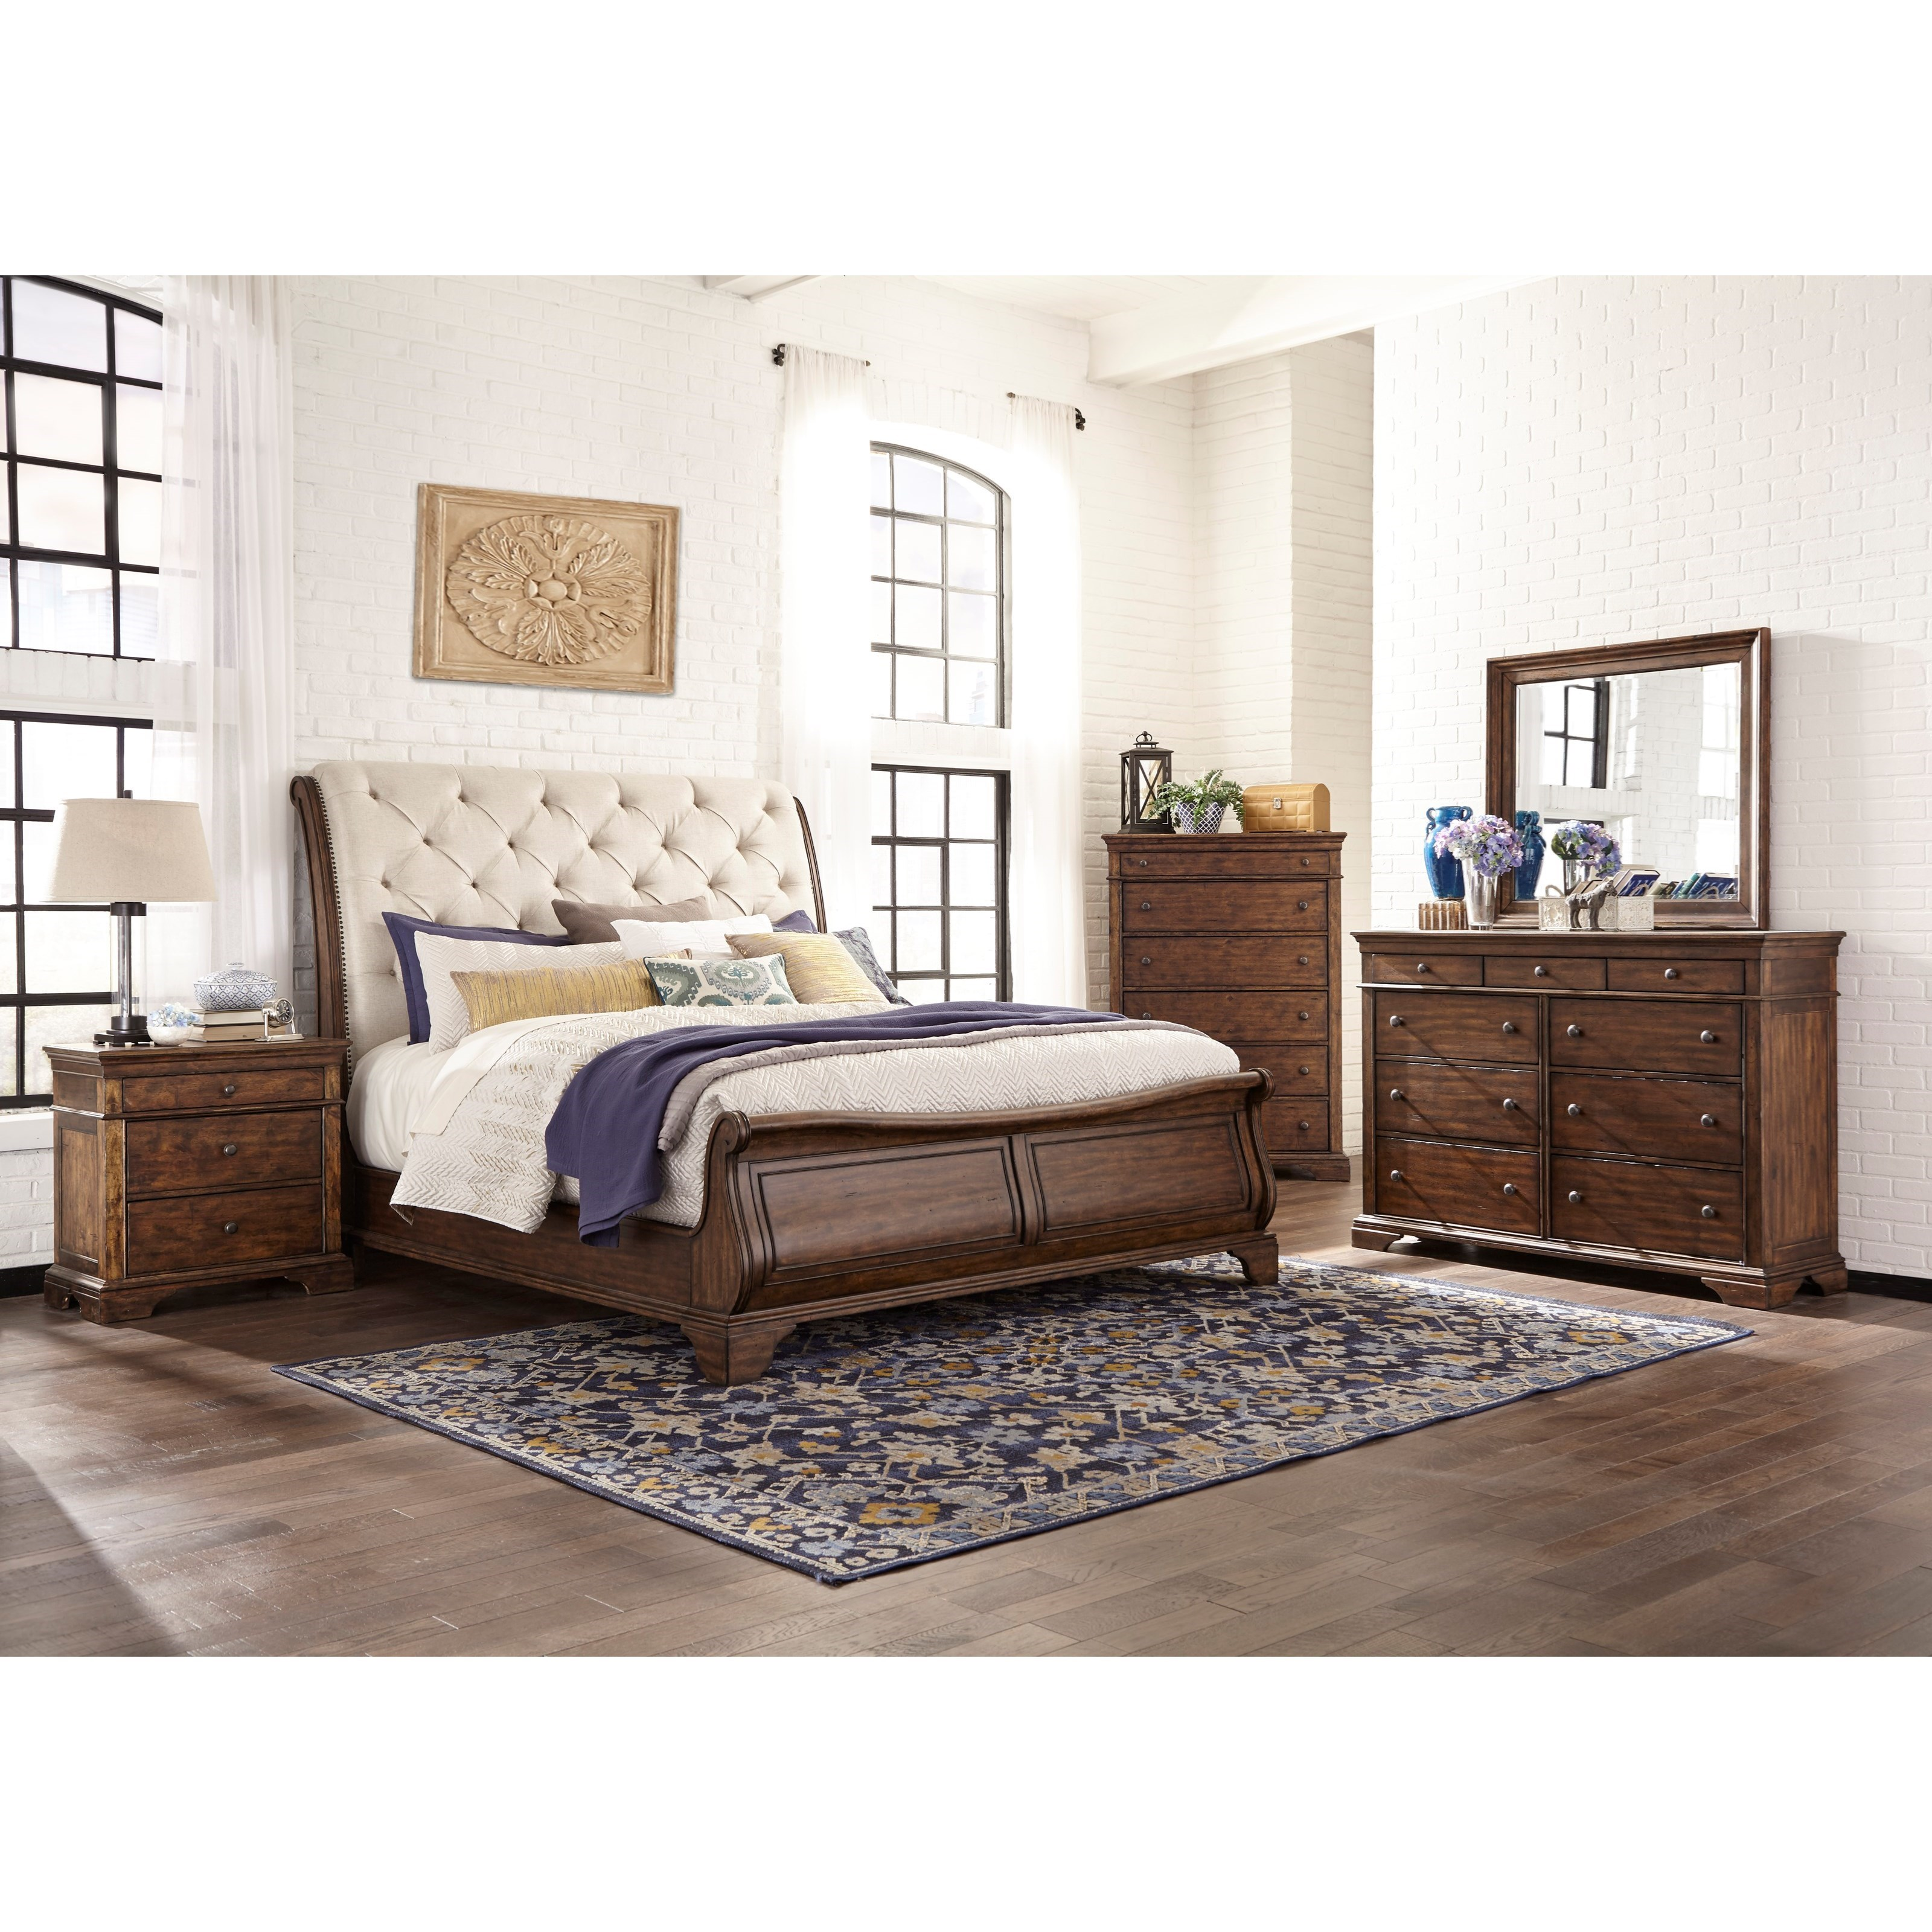 and queen by drew sleigh furniture tufted headboard products bed linen footboard with upholstered